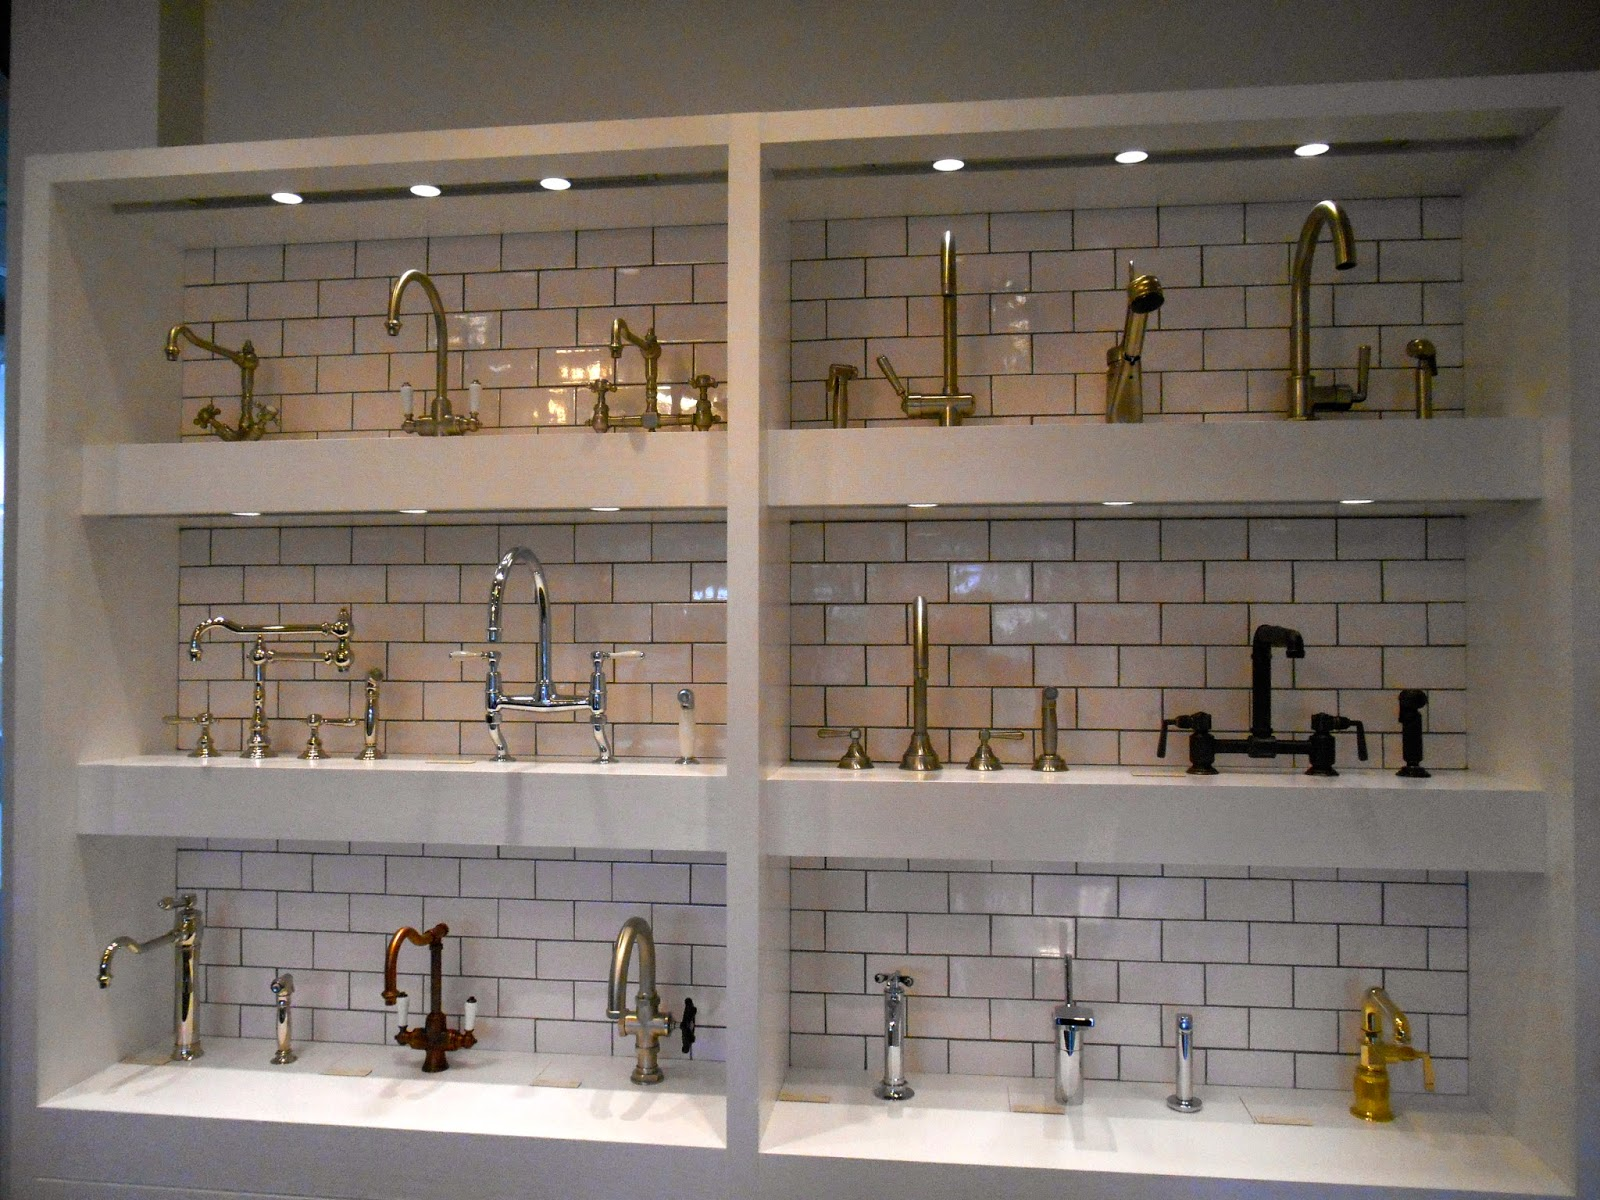 My Notting Hill Waterworks New Kitchen Line Reveal - Waterworks kitchen faucet